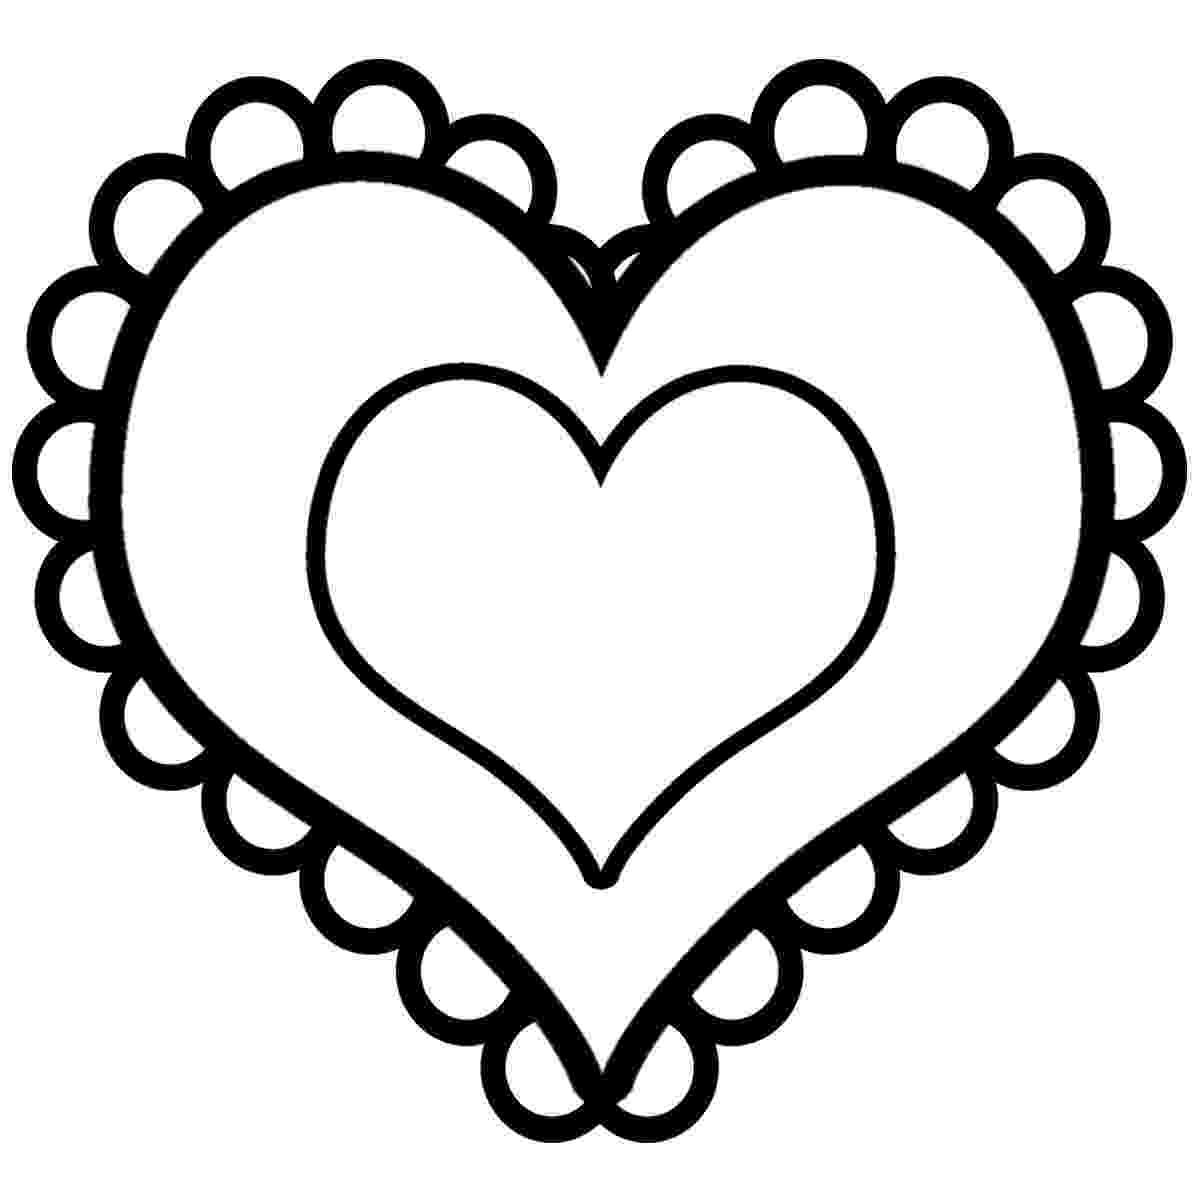 love hearts pictures to colour 35 free printable heart coloring pages to pictures love hearts colour